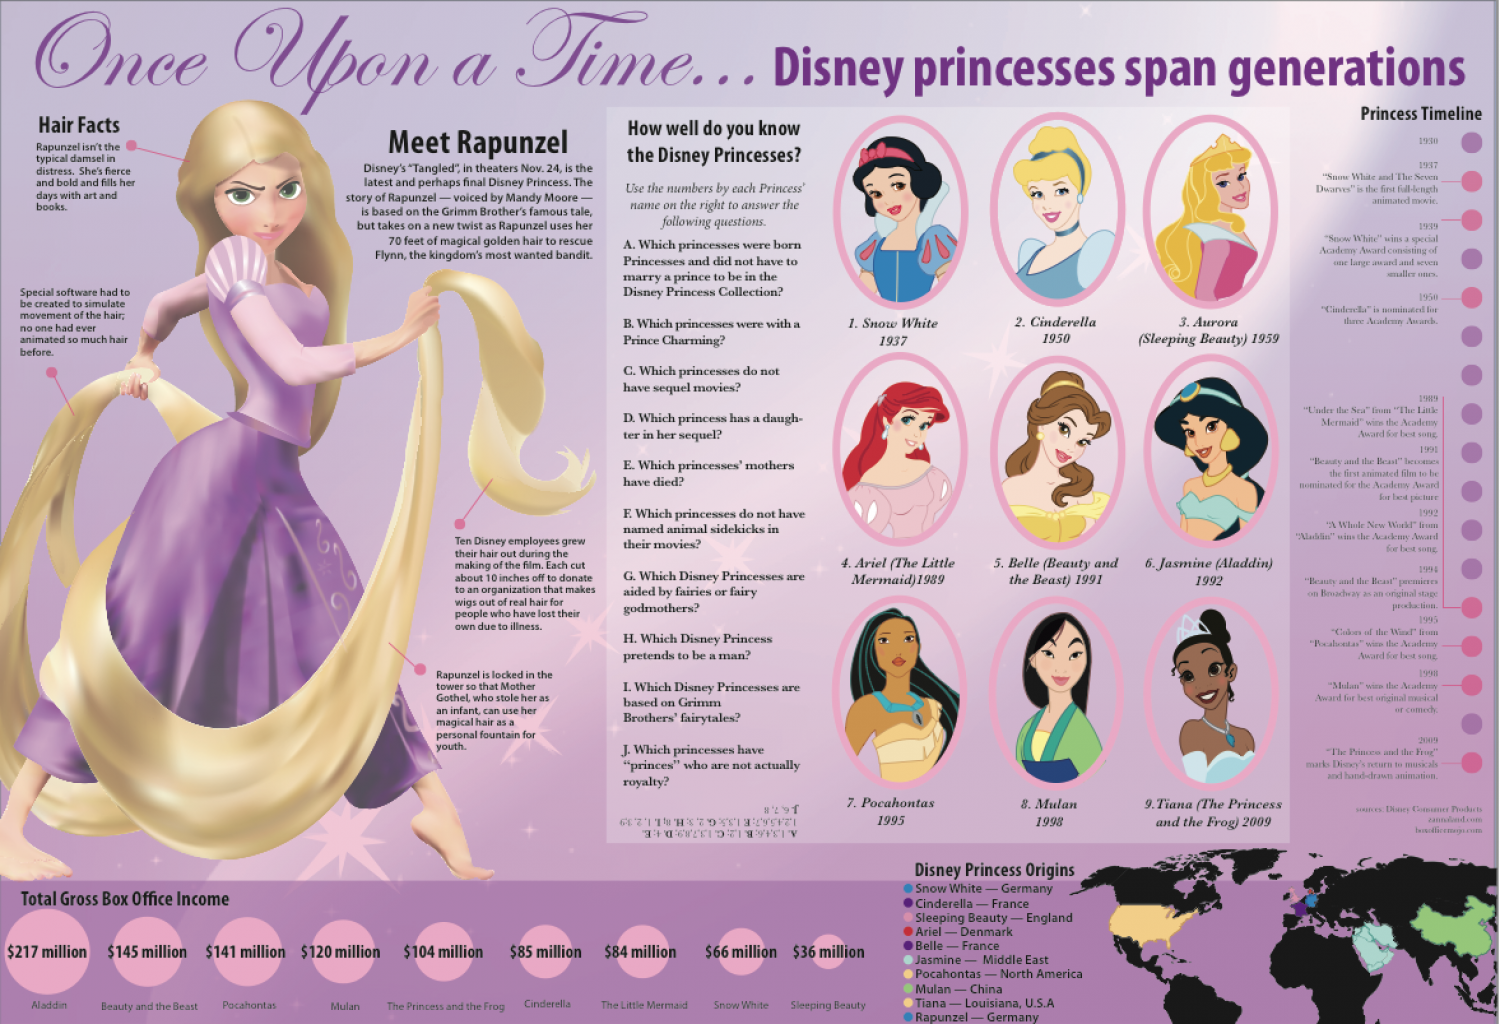 Once Upon a Time Disney Princesses Span Generations Infographic